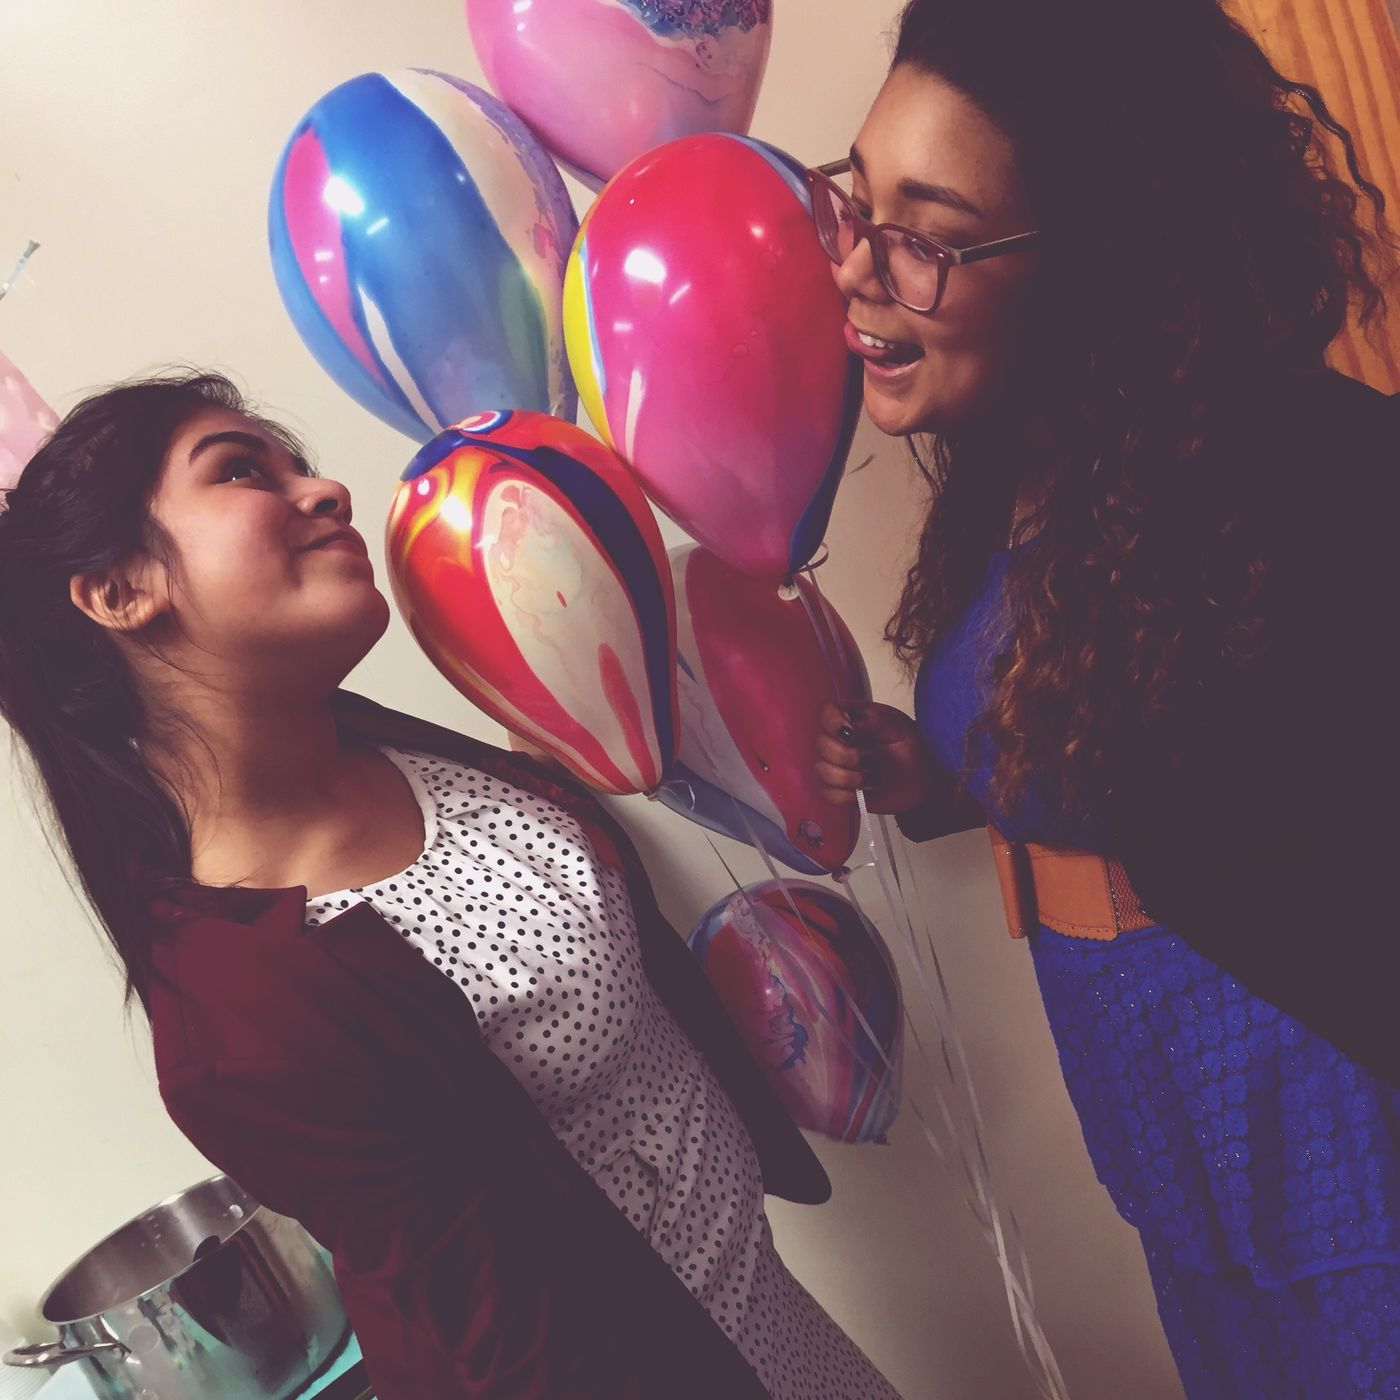 Friends Surprise Birthday Party Balloons Fun